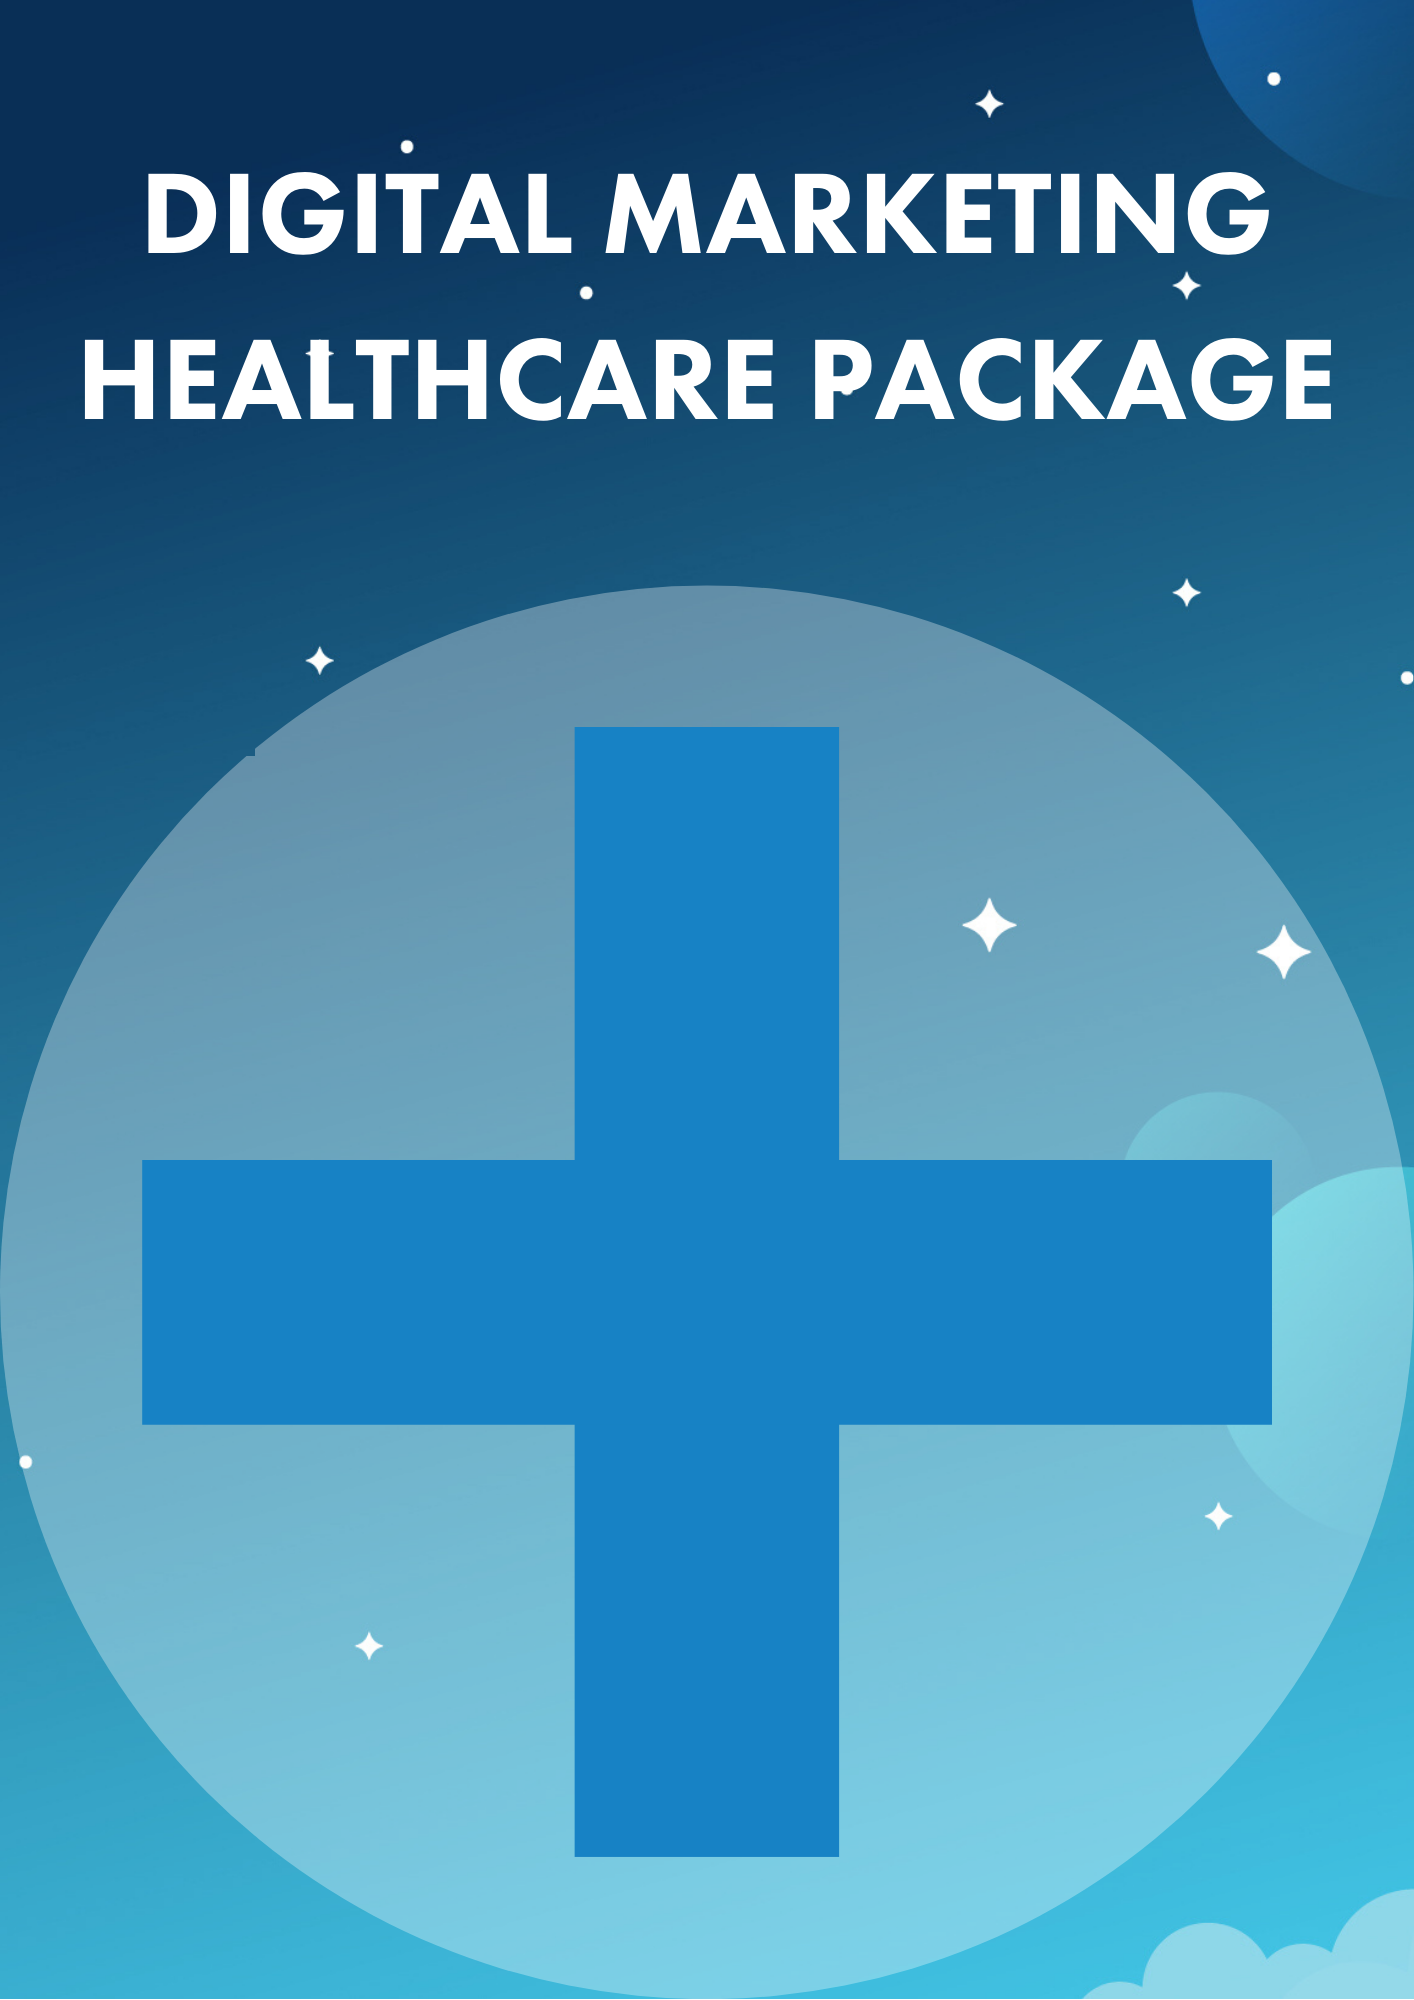 Digital Marketing Healthcare Package